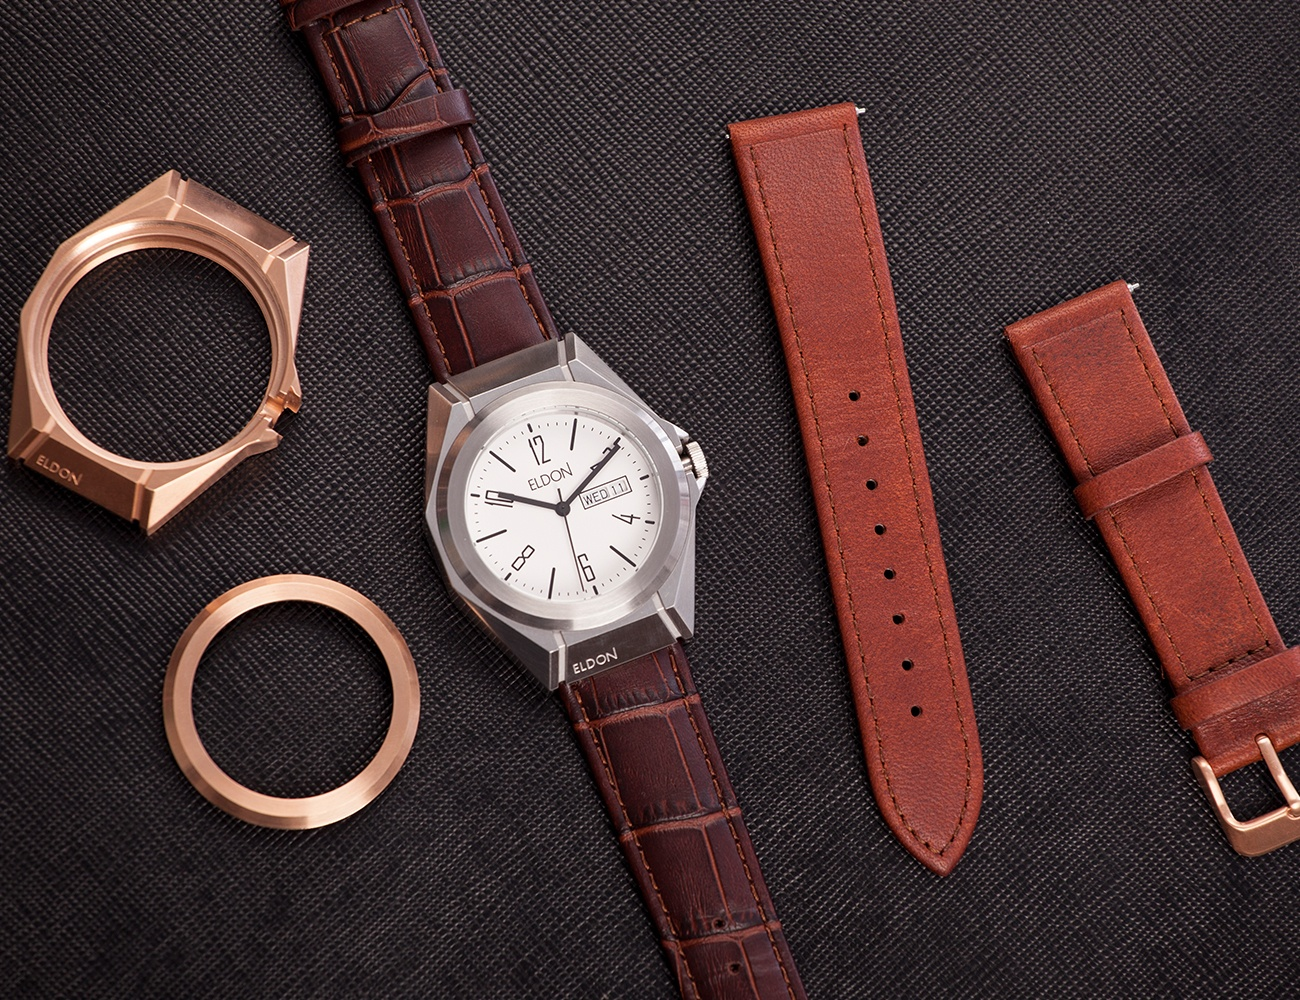 Eldon+Watches+%26%238211%3B+The+Fully+Interchangeable+Watch%21